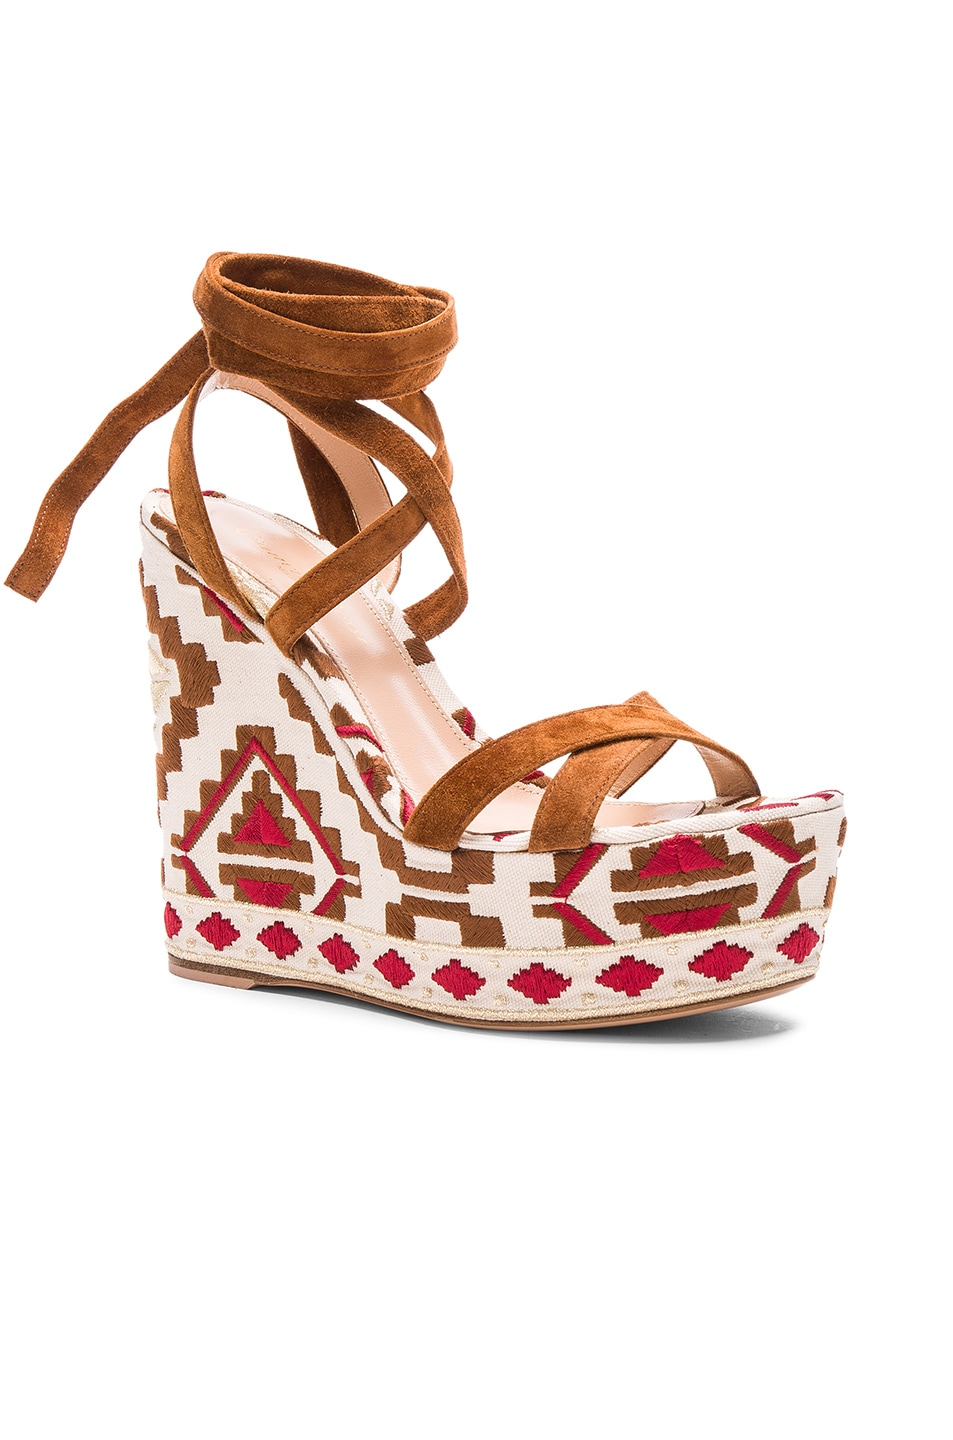 Image 2 of Gianvito Rossi Printed Suede Wedges in Luggage